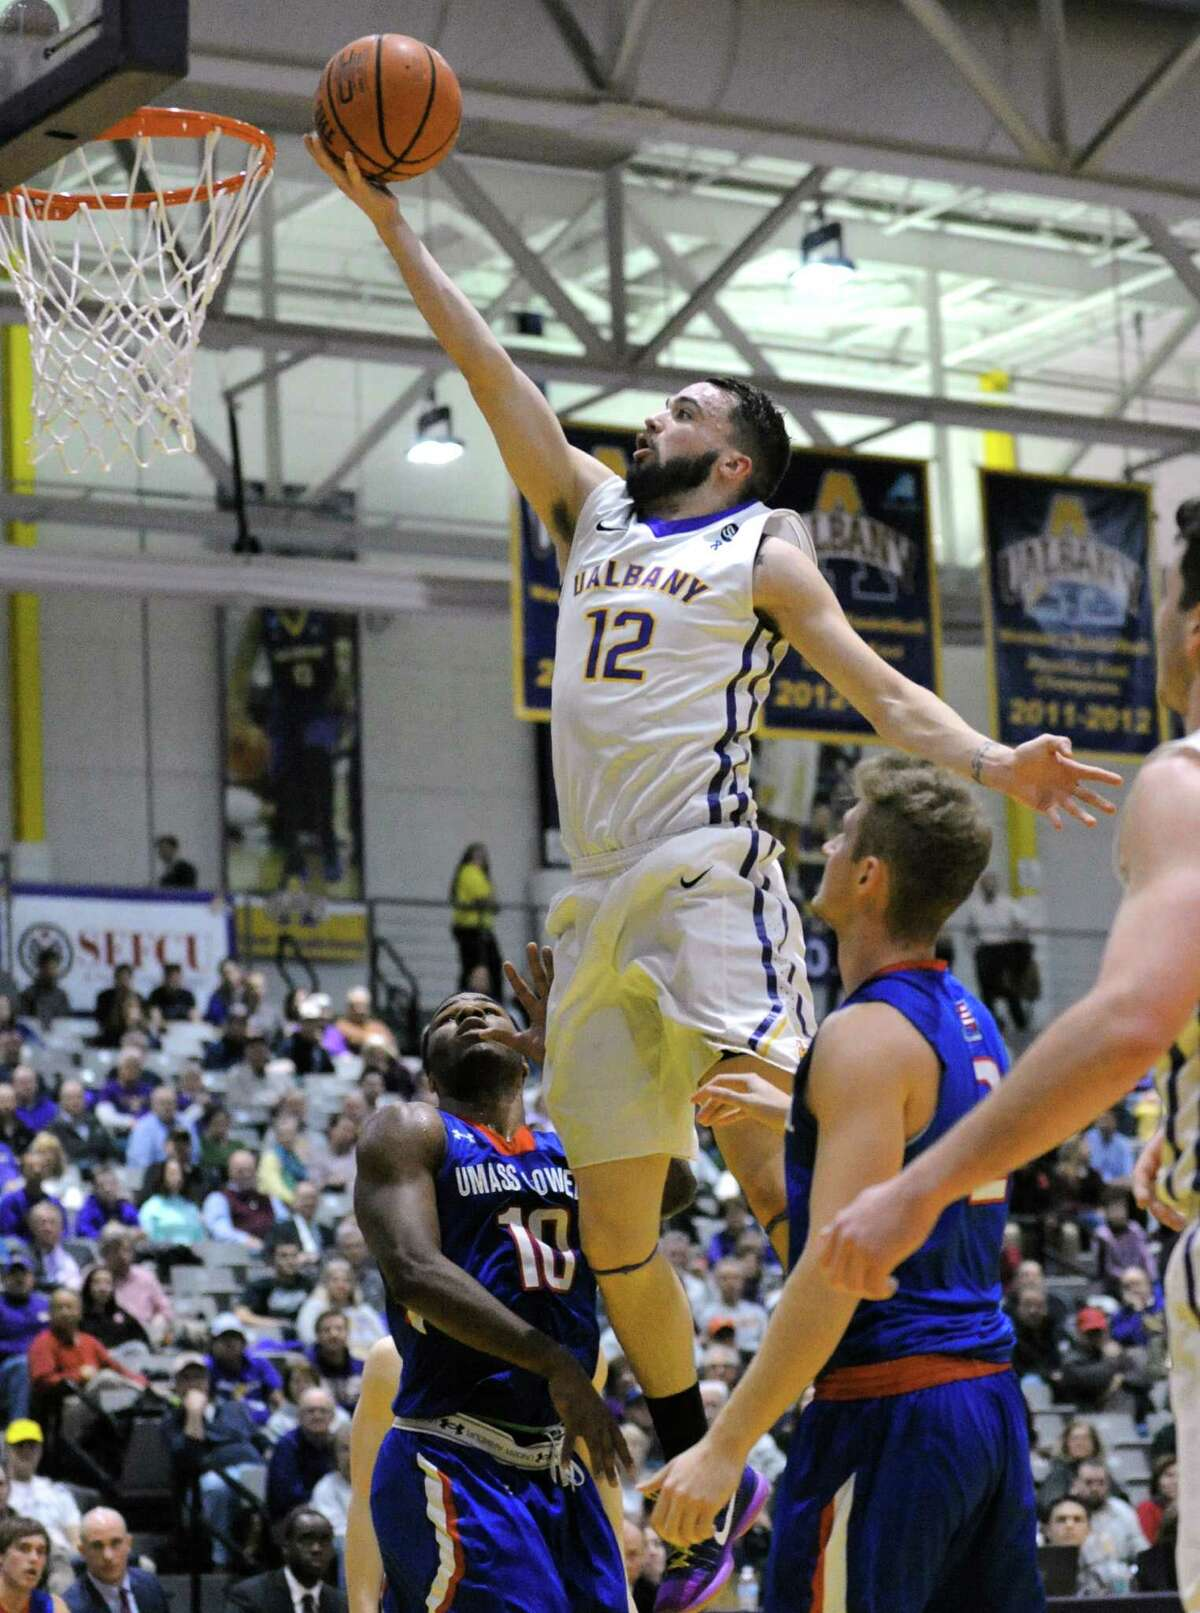 UAlbany's Peter Hooley goes in for a score during their men's college basketball game against UMass Lowell in an America East game at SEFCU Arena on Wednesday Jan. 27, 2016 in Albany, N.Y. (Michael P. Farrell/Times Union)